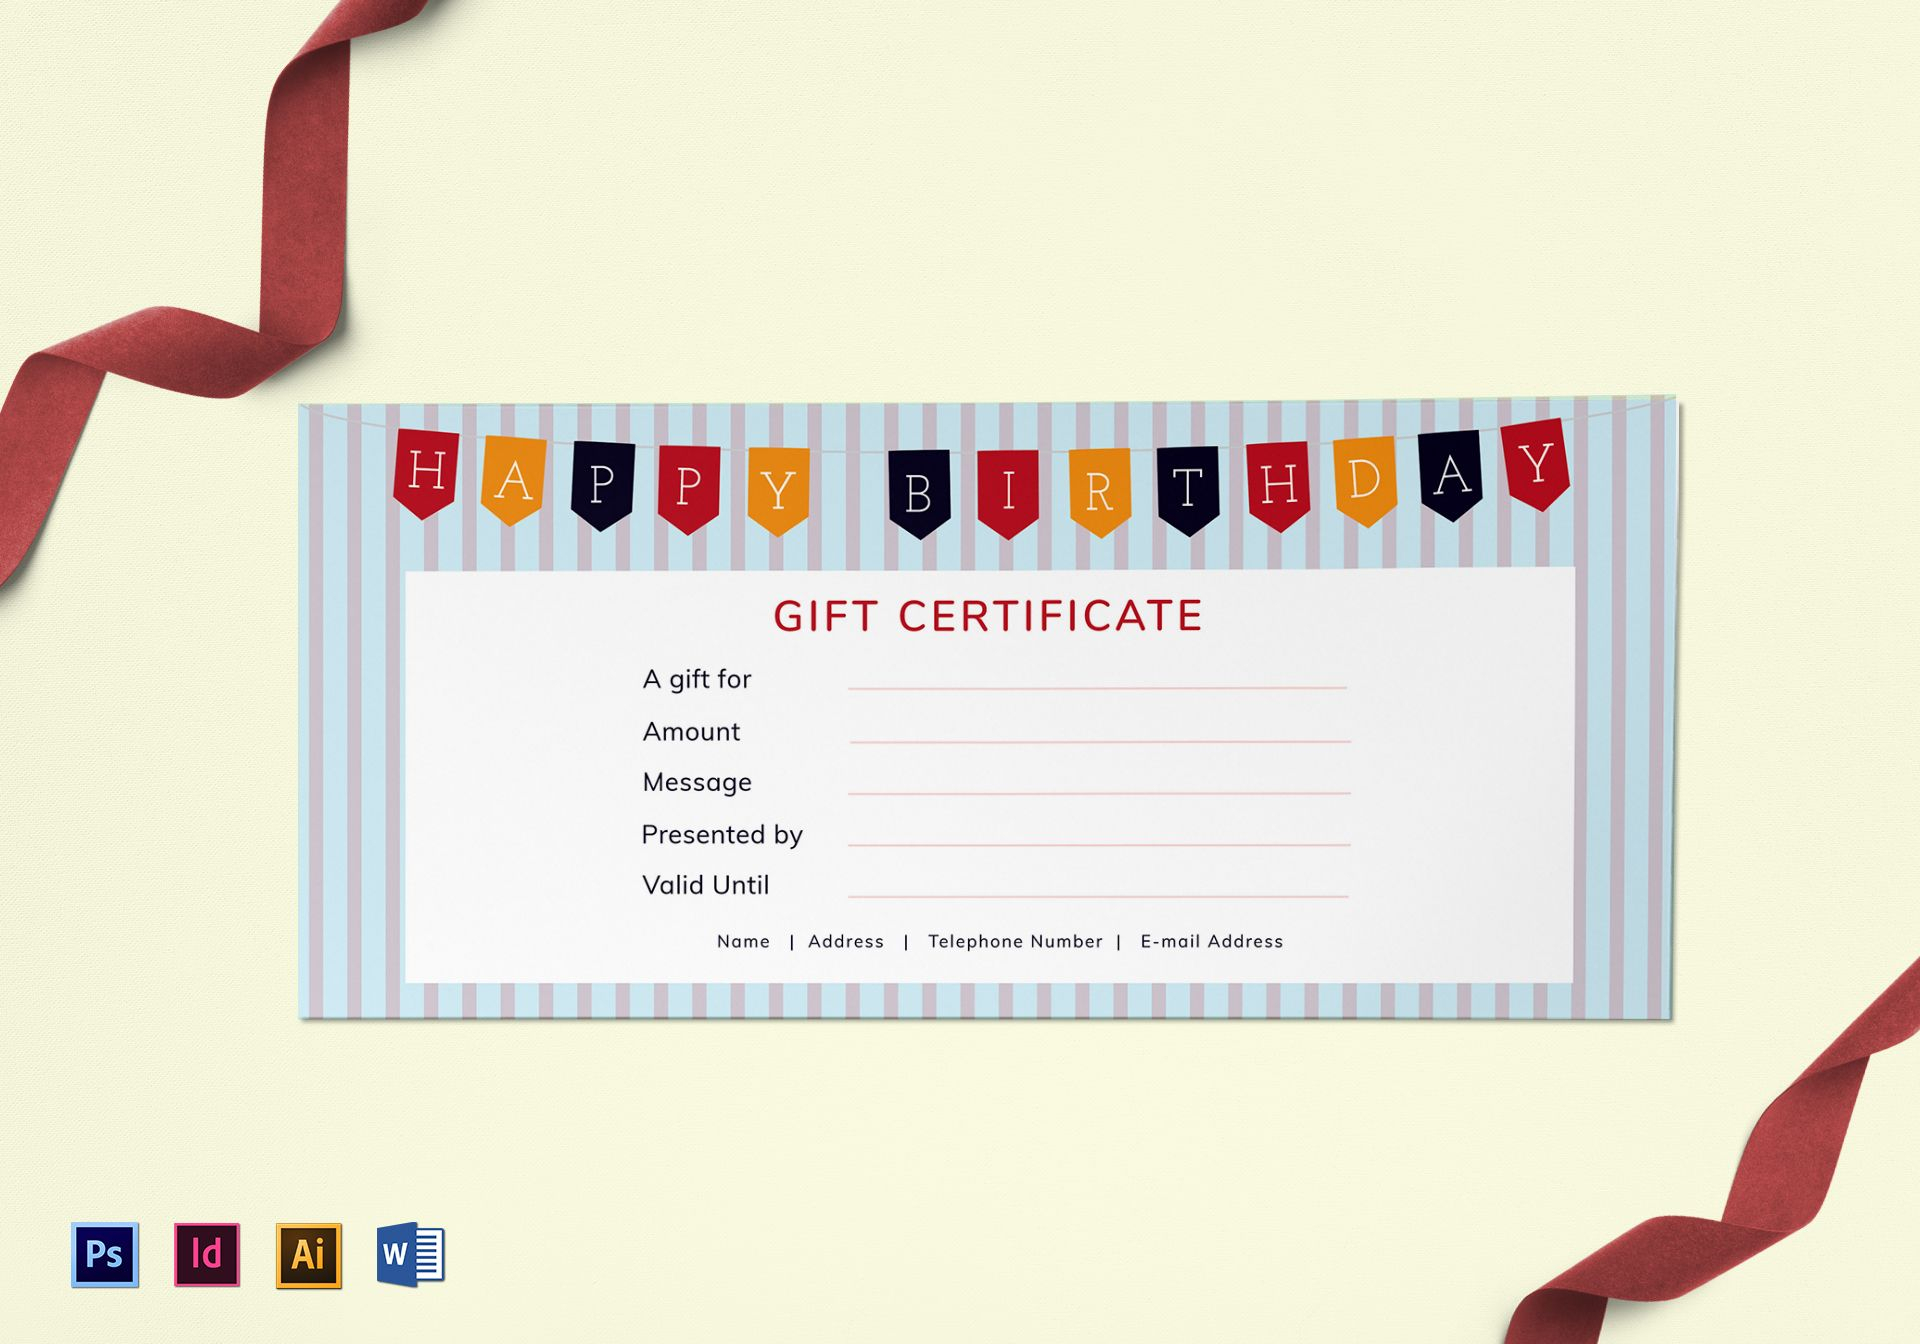 Happy Birthday Gift Certificate Template Throughout Gift Certificate Template Indesign